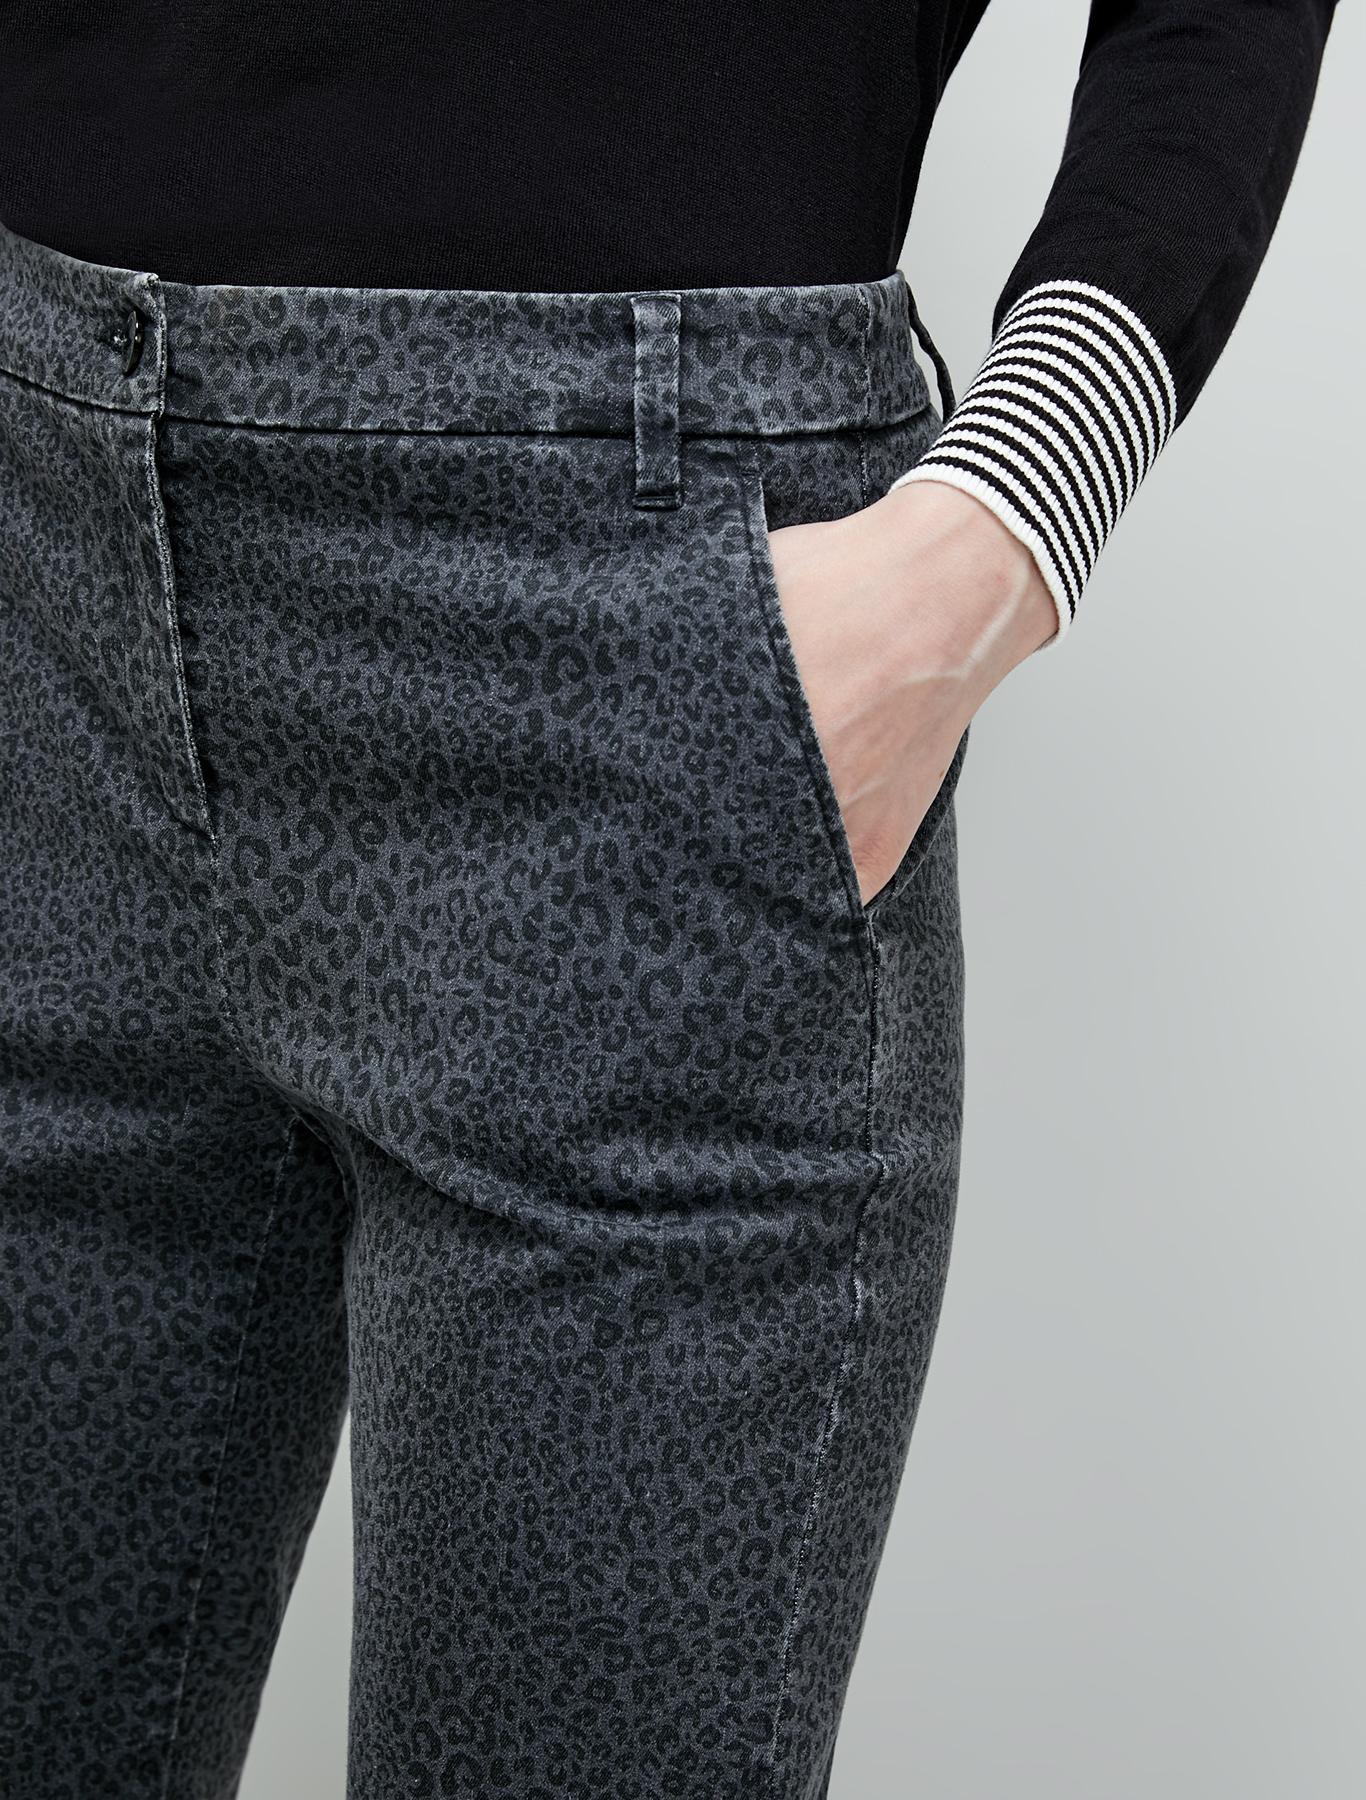 Spotted micro-pattern jeans - black - pennyblack